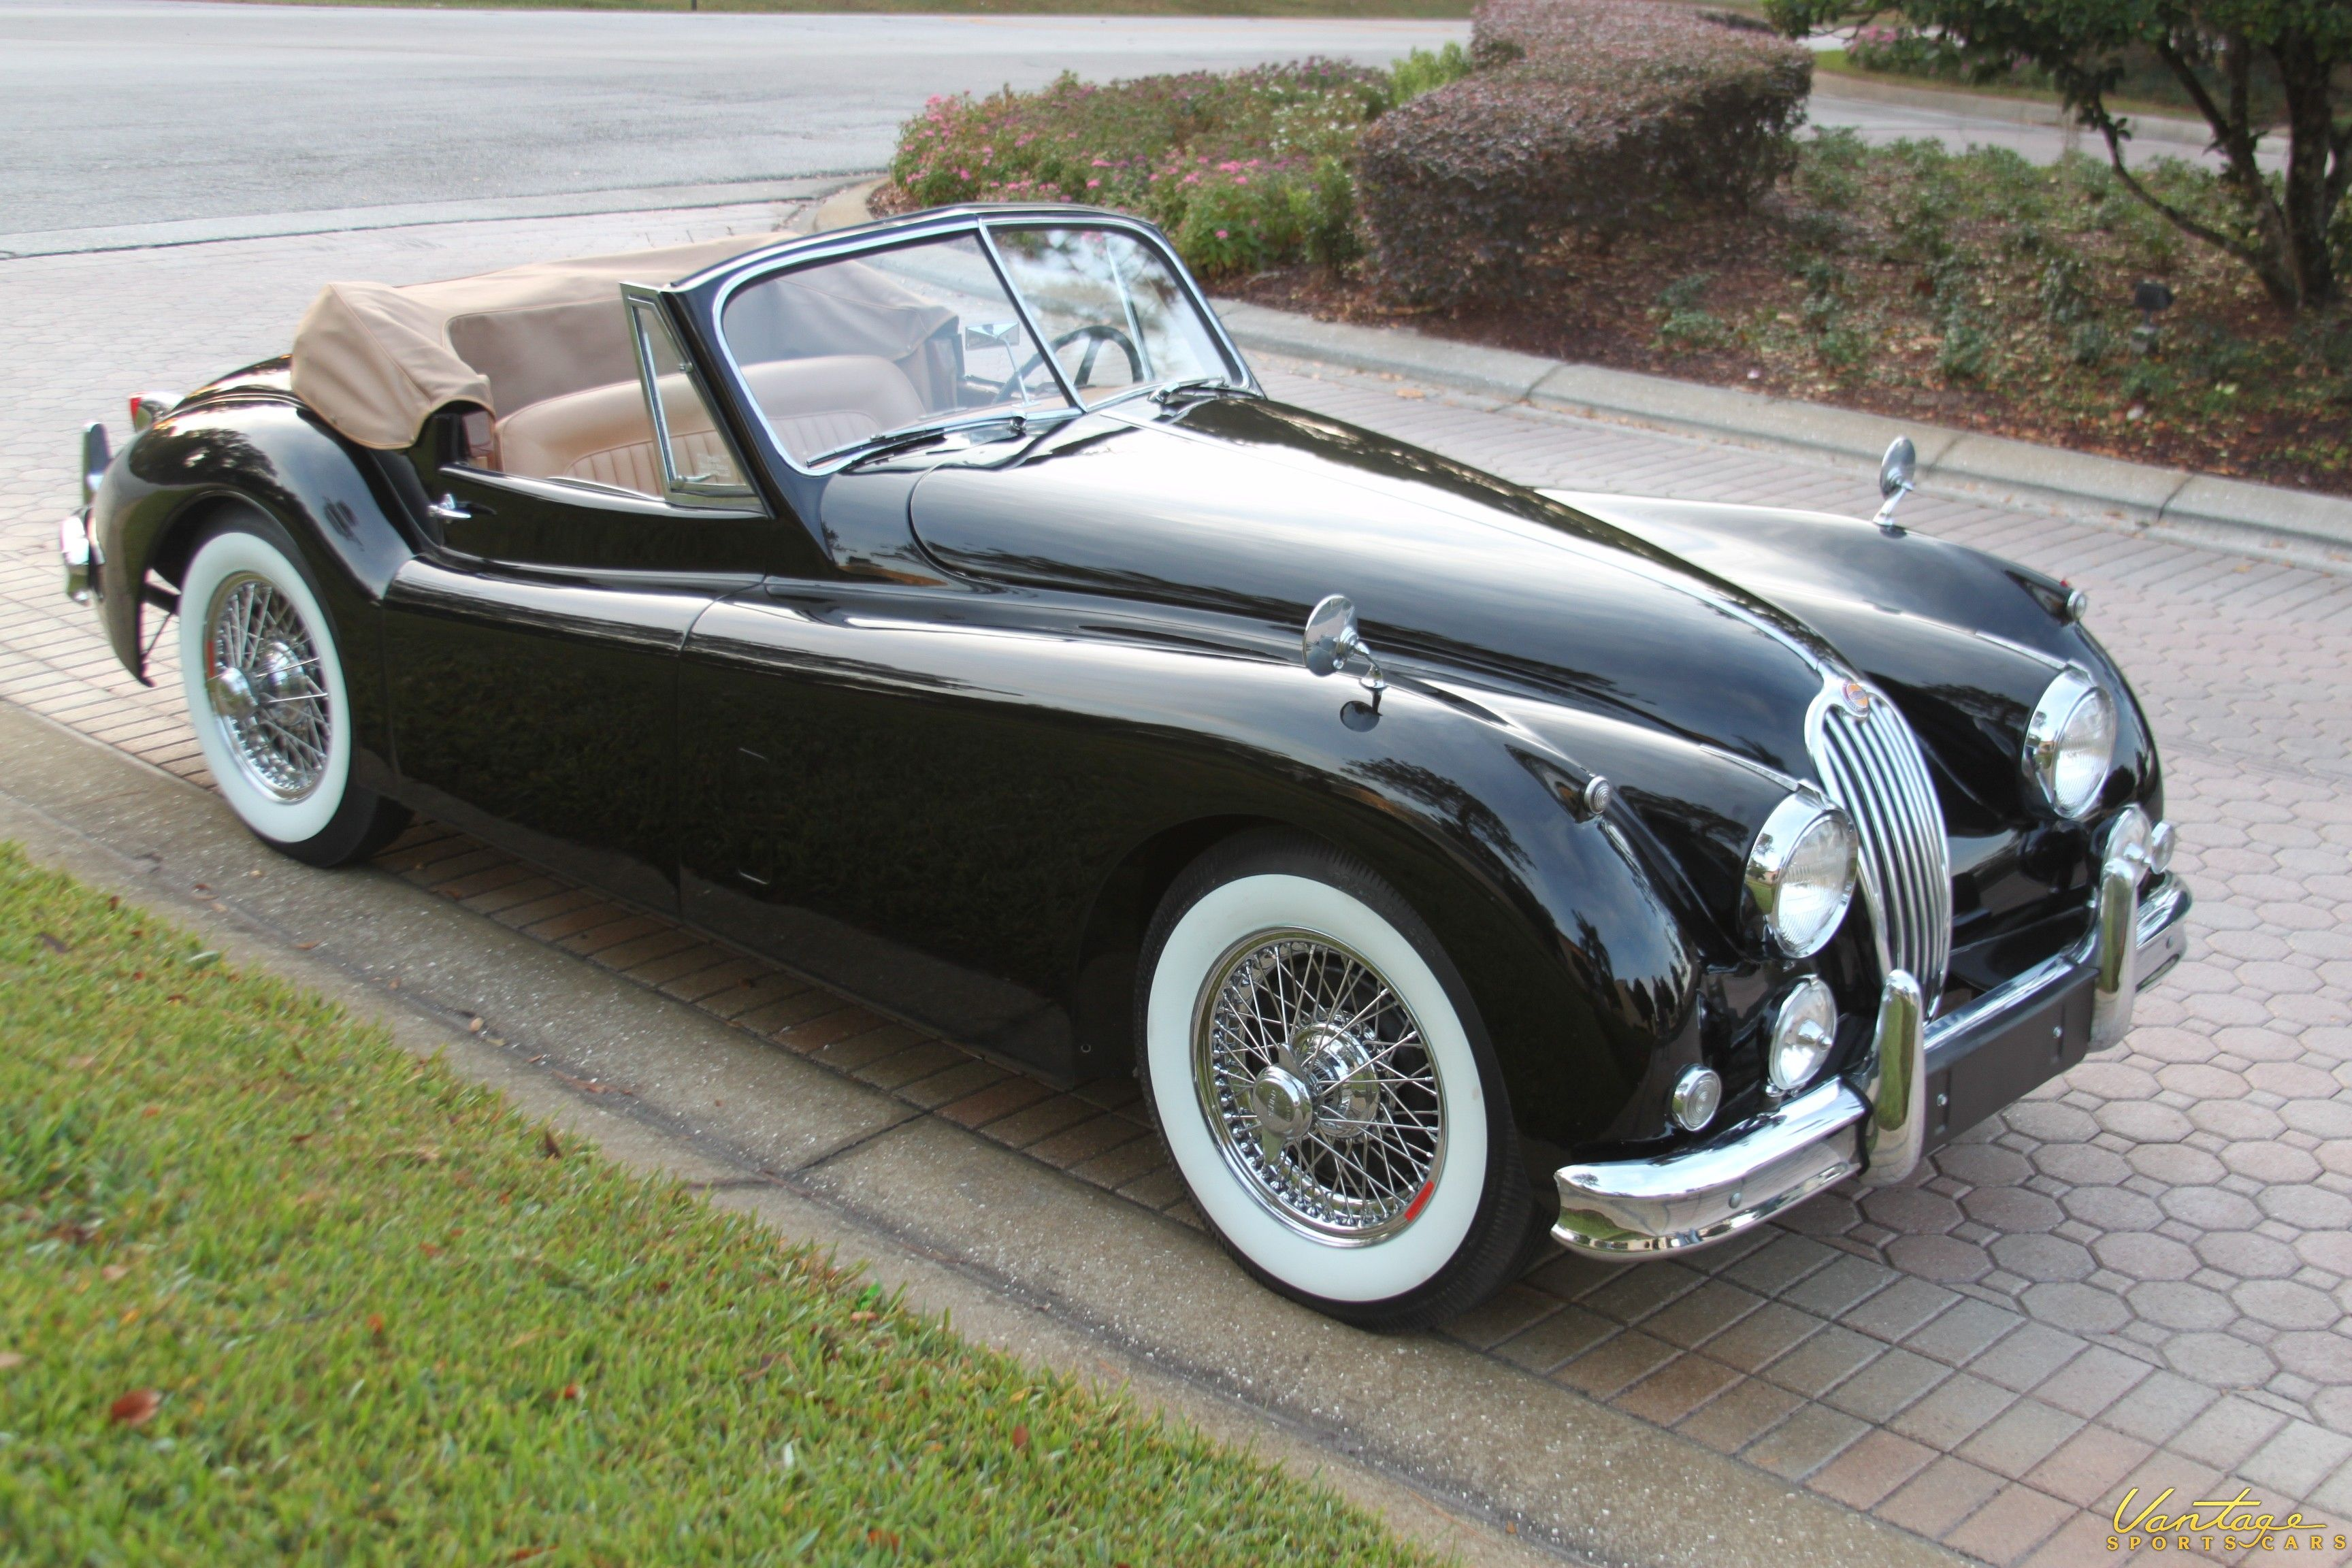 1957 jaguar xk140 1957 jaguar xk140m drophead with overdrive sold